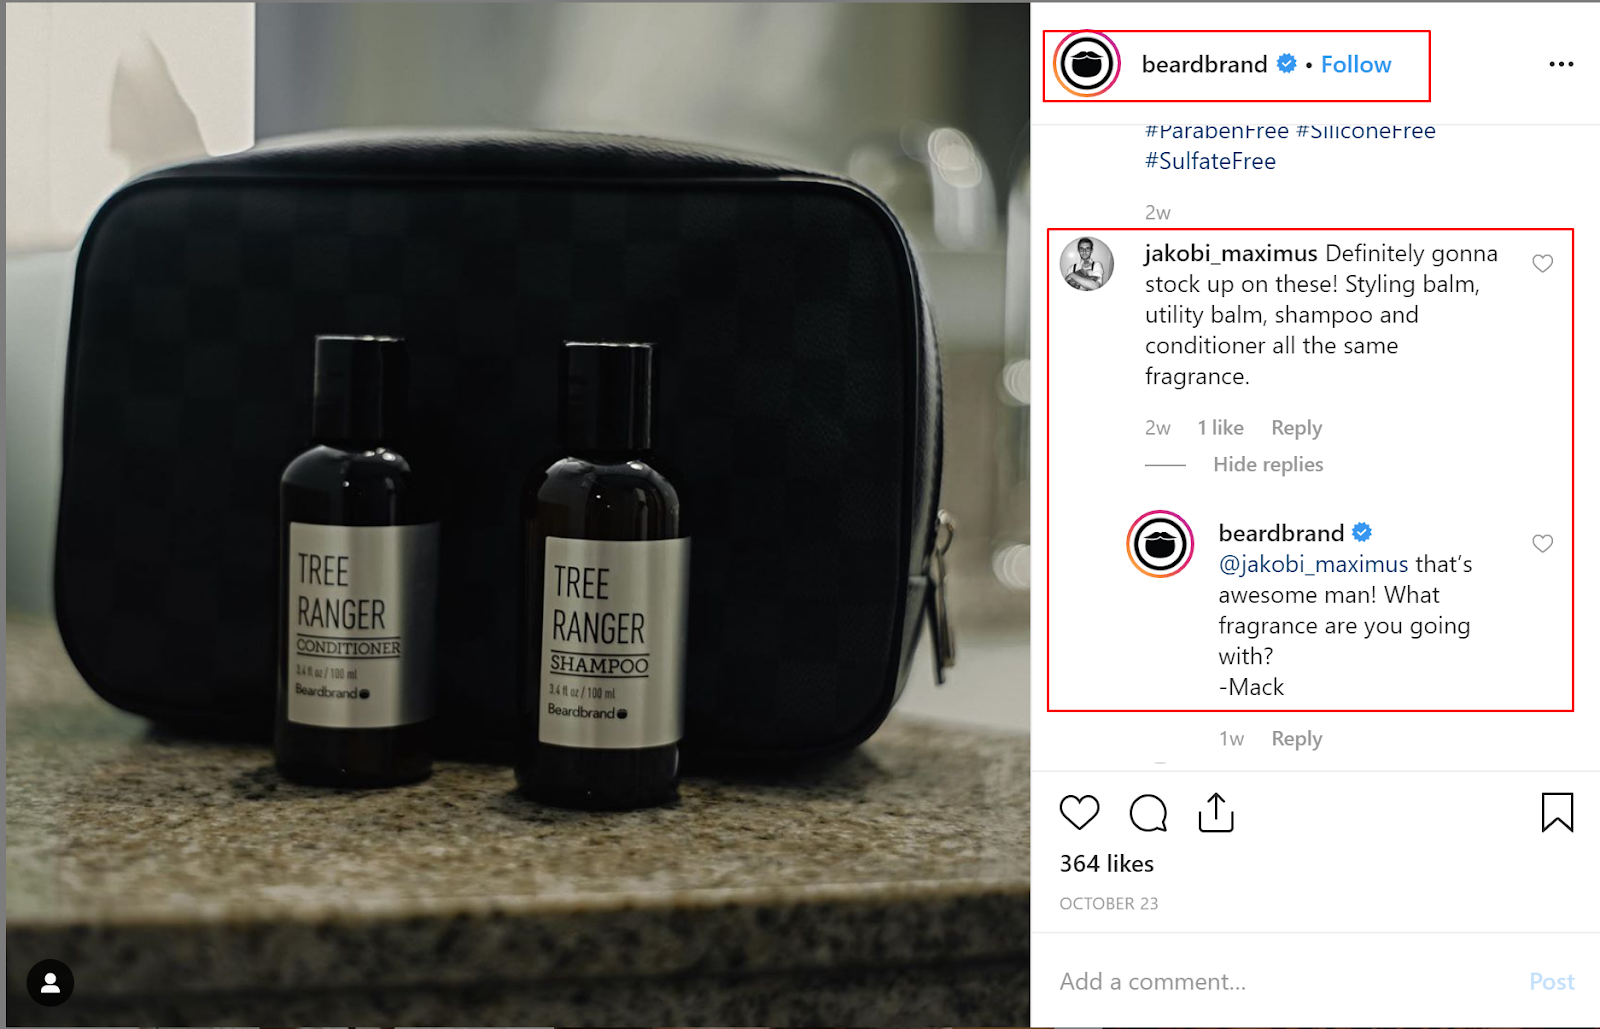 new instagram post featuring Beardbrand products and the brand engaging with followers.